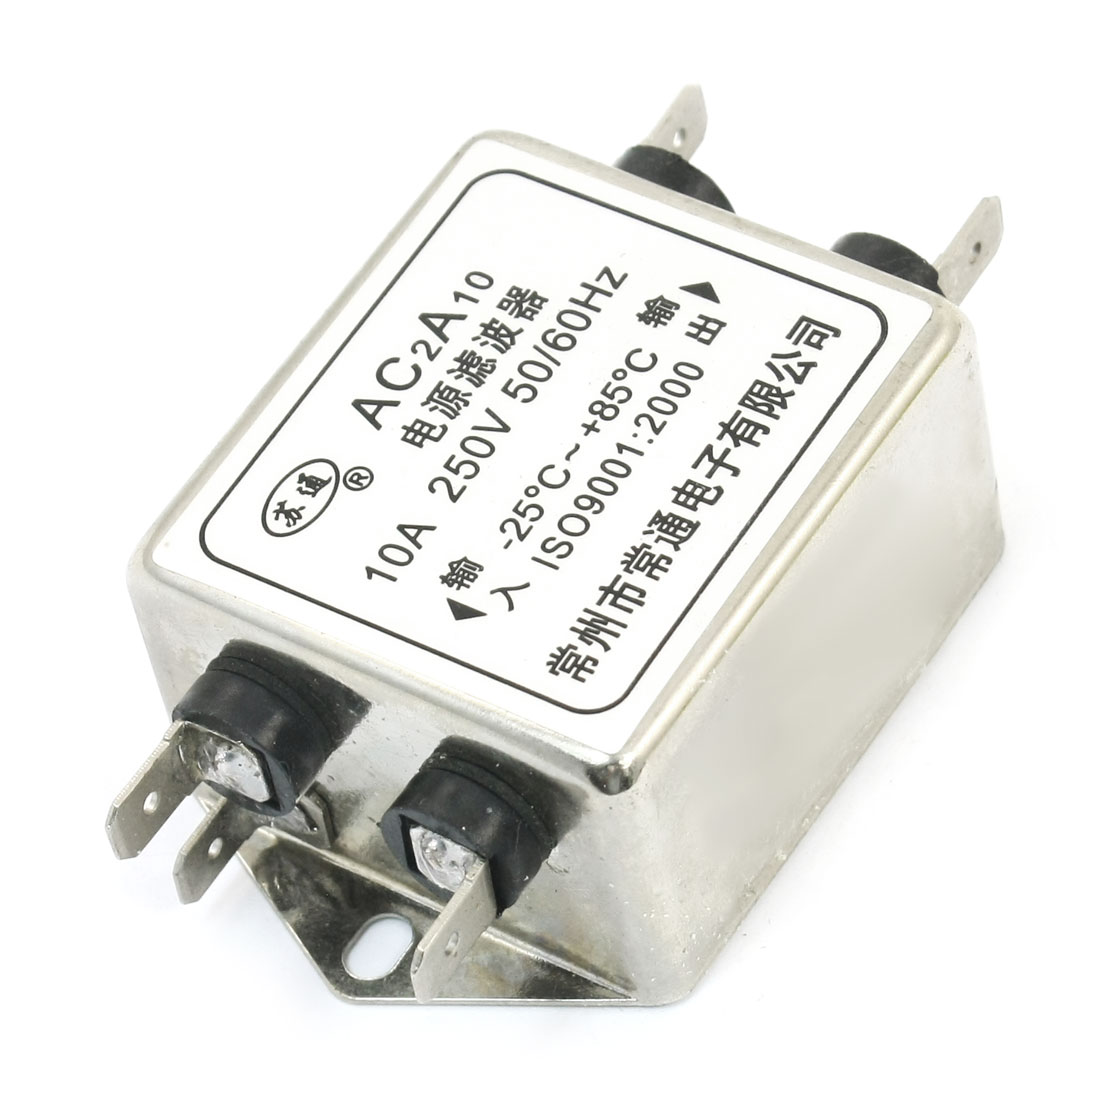 AC2A10 AC 250V 10A 4-Pin Soldering Rectangle Metal Case Single Phase Noise Suppressor General Purpose Power EMI Filter